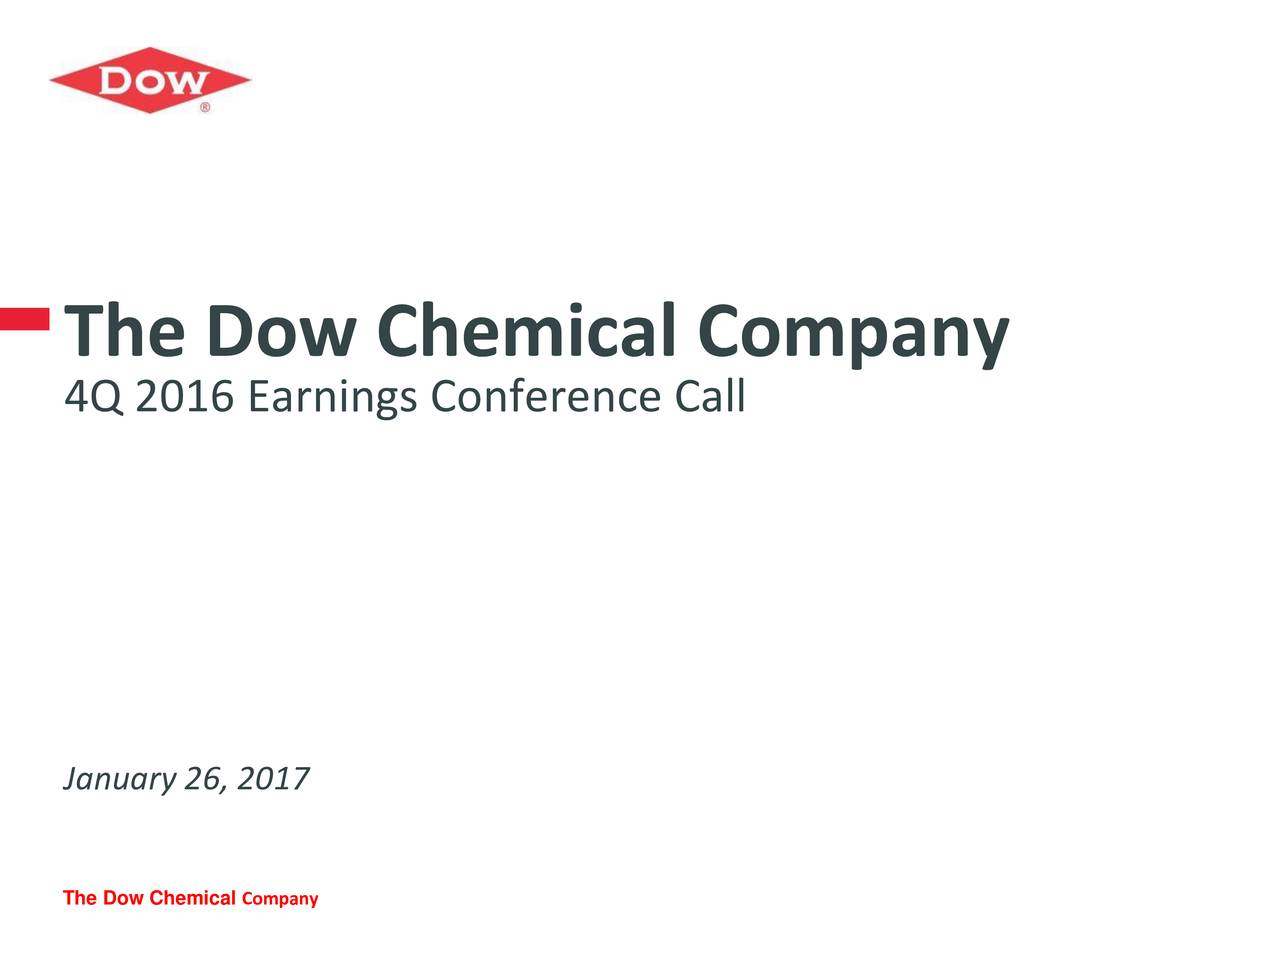 Dow Chemical Co 2016 Q4 Results Earnings Call Slides